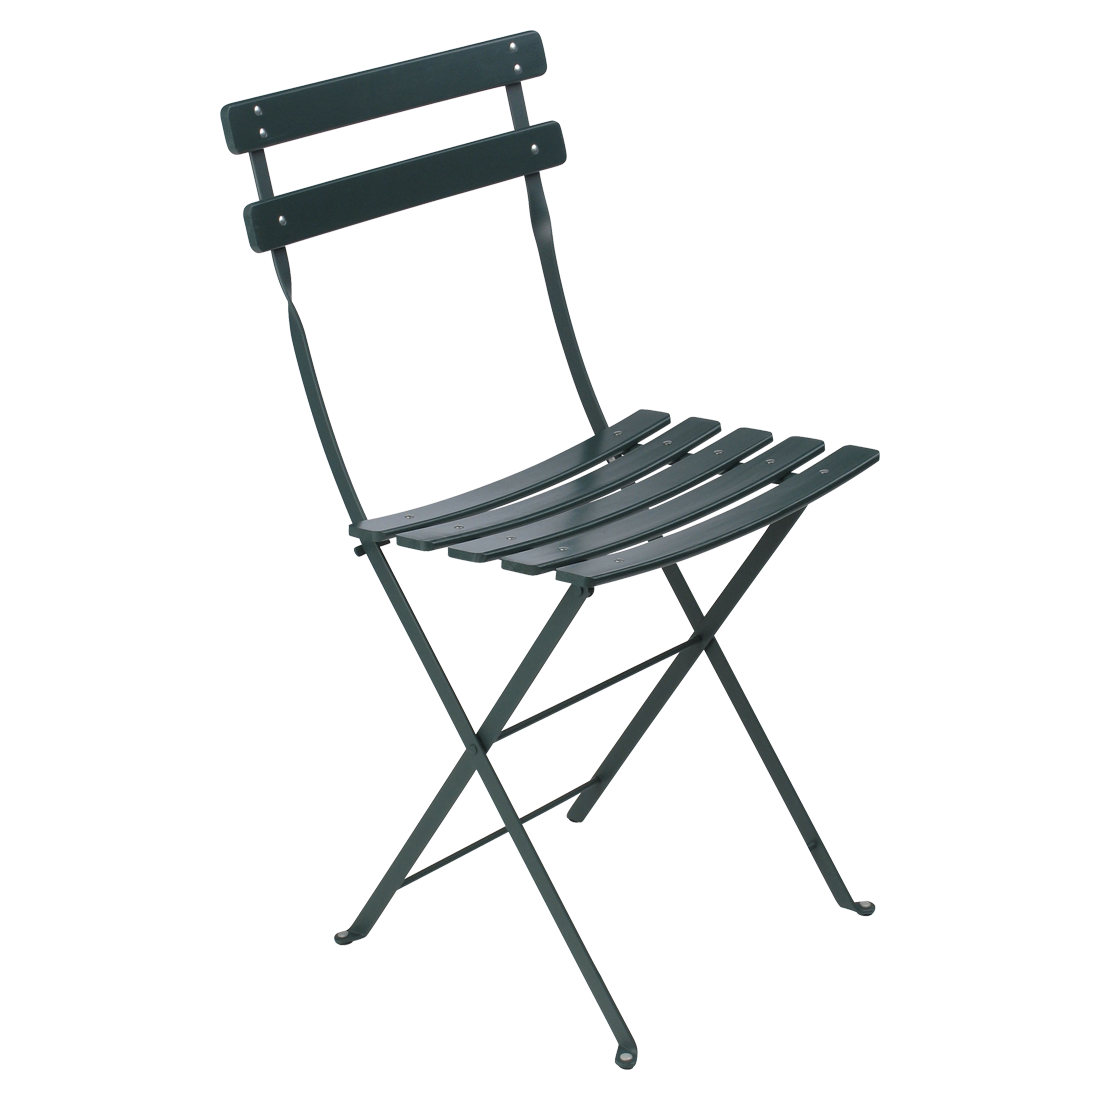 Bistro Classic Chair, Metal Chair, Outdoor Furniture